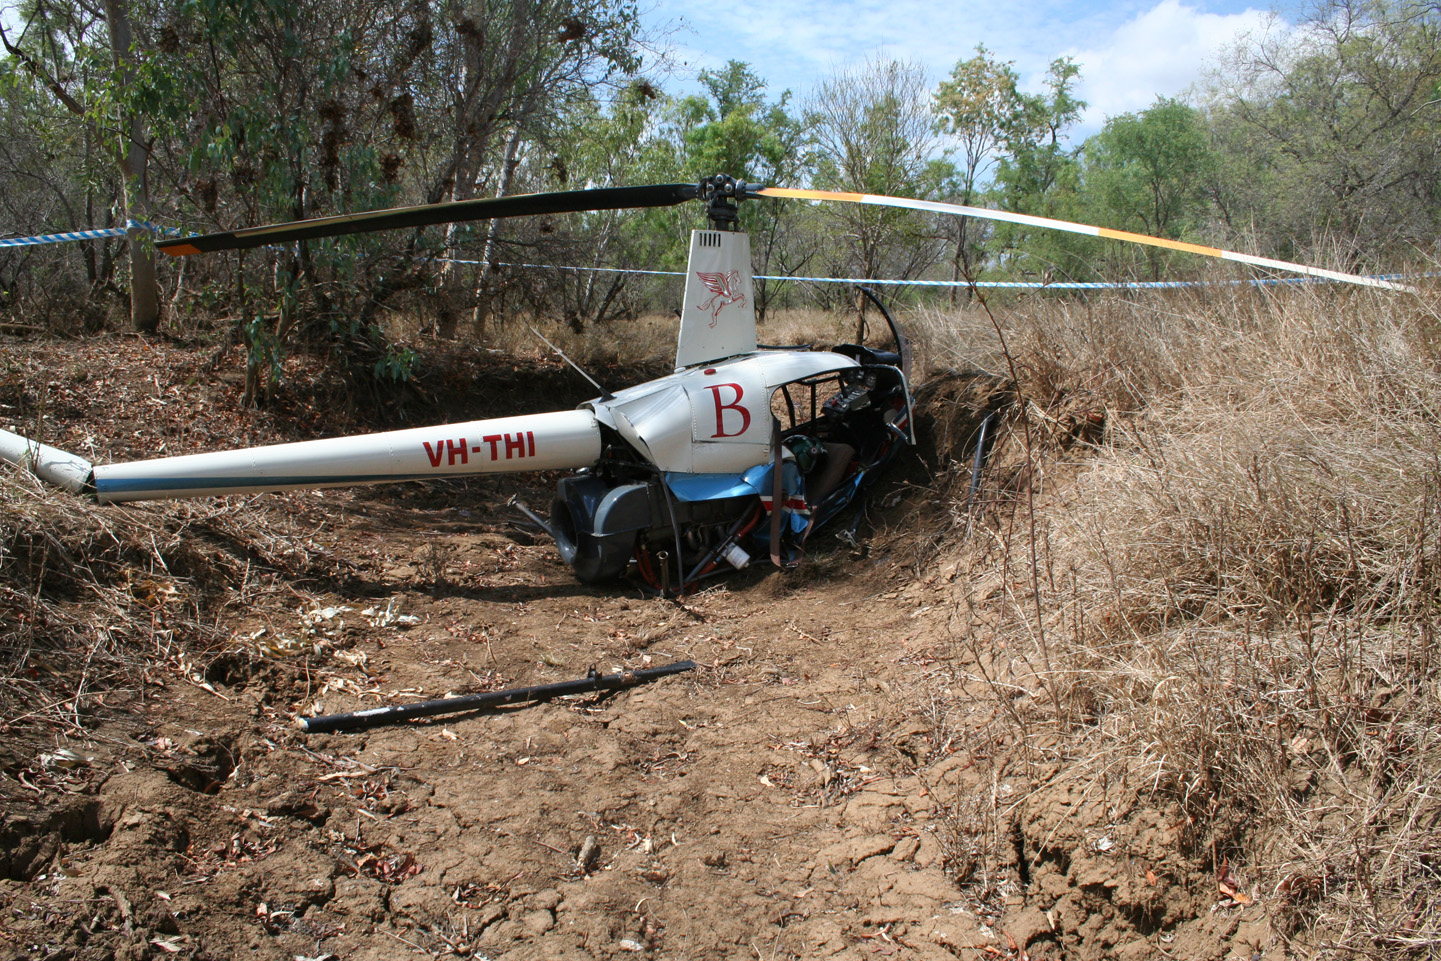 helicopter accident reports with Ao 2010 073 on FreemanSTART together with Fort Carson Goes Partial Lockdown Amid Shooting Situation N209351 likewise 6464999 furthermore Plane Carrying 72 Passengers Including Brazilian Football Team Crashes Colombia Reports Say in addition Saipem 7000 Pipe Layer Platform.